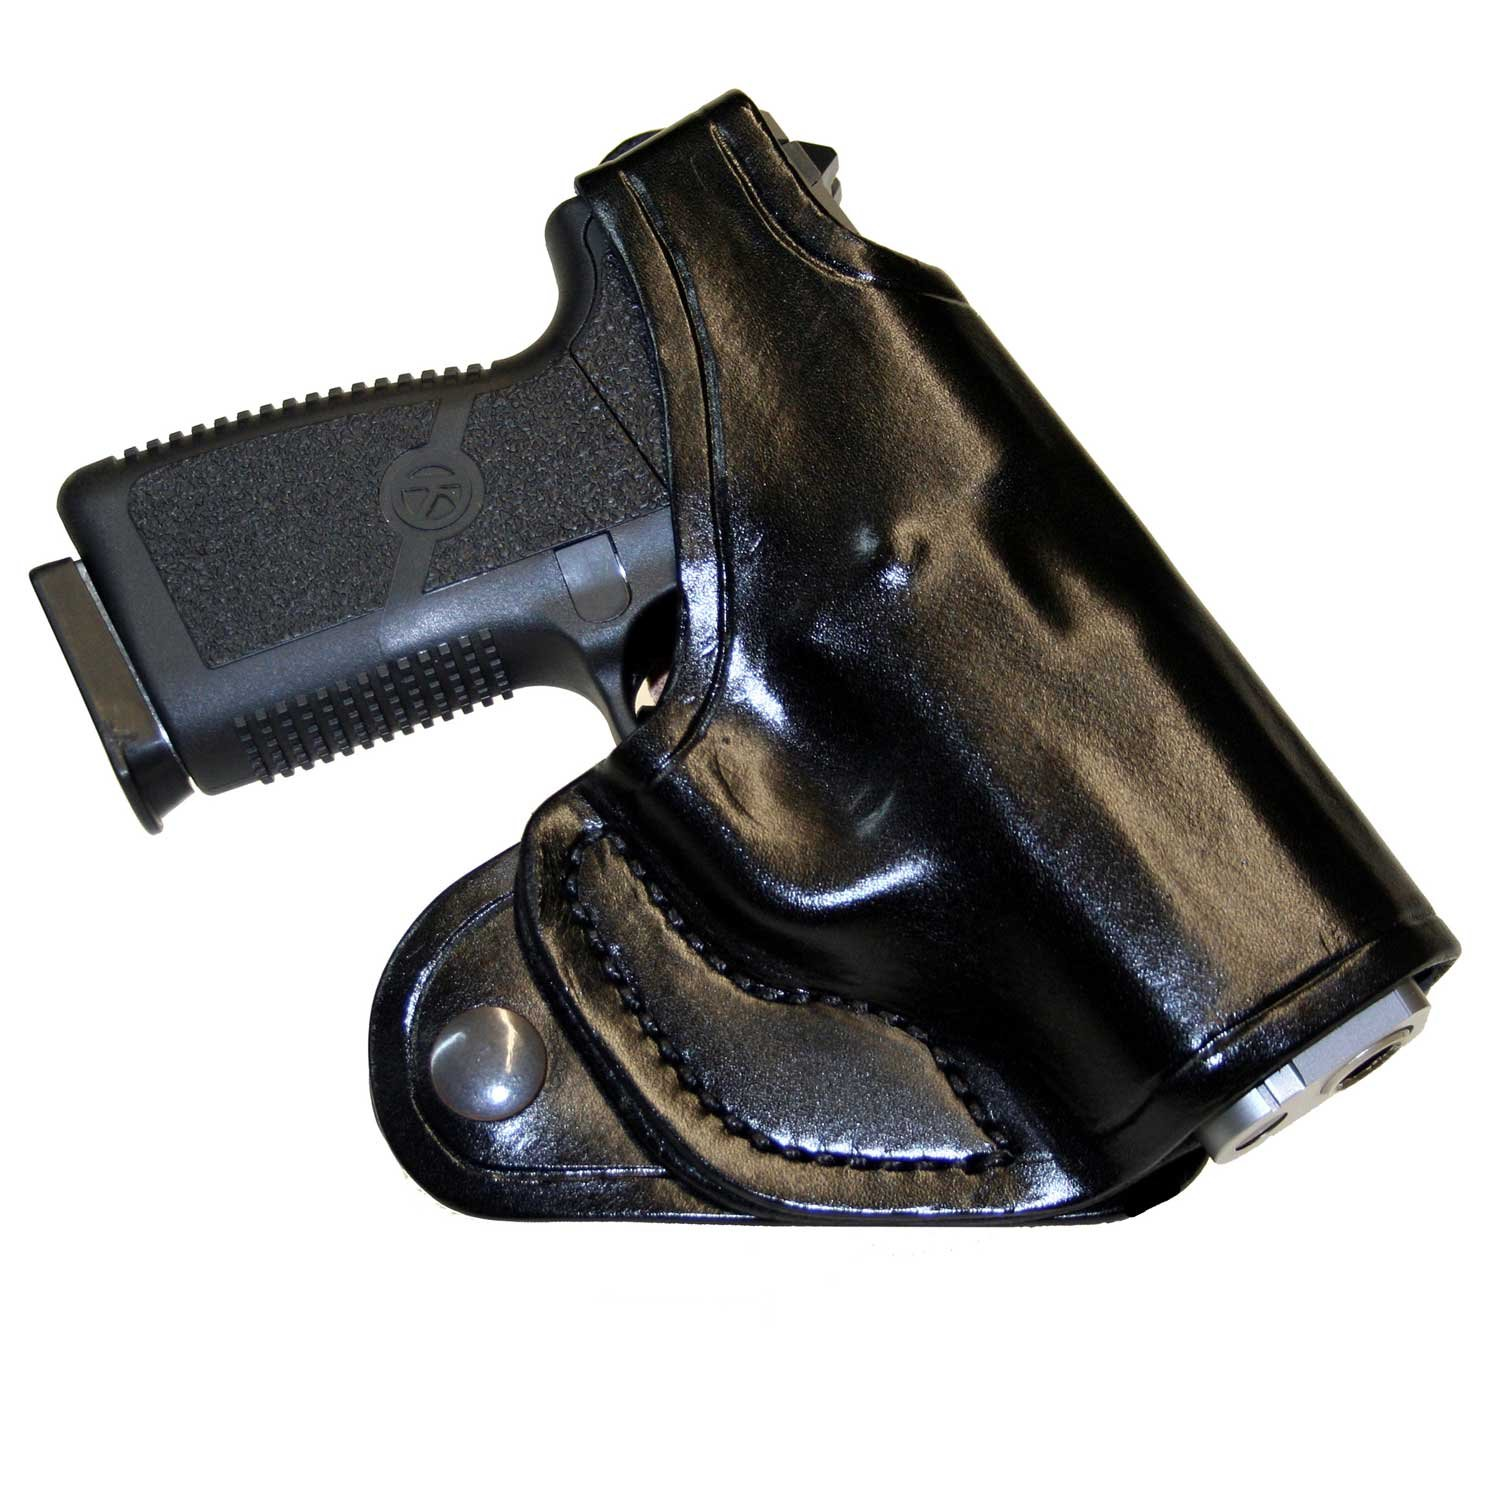 Activeprogear Leather Driving Crossdraw Gun Holster Diagram Besides Colt Series 80 1911 Assembly Diagrams On Pistol Sports Outdoors